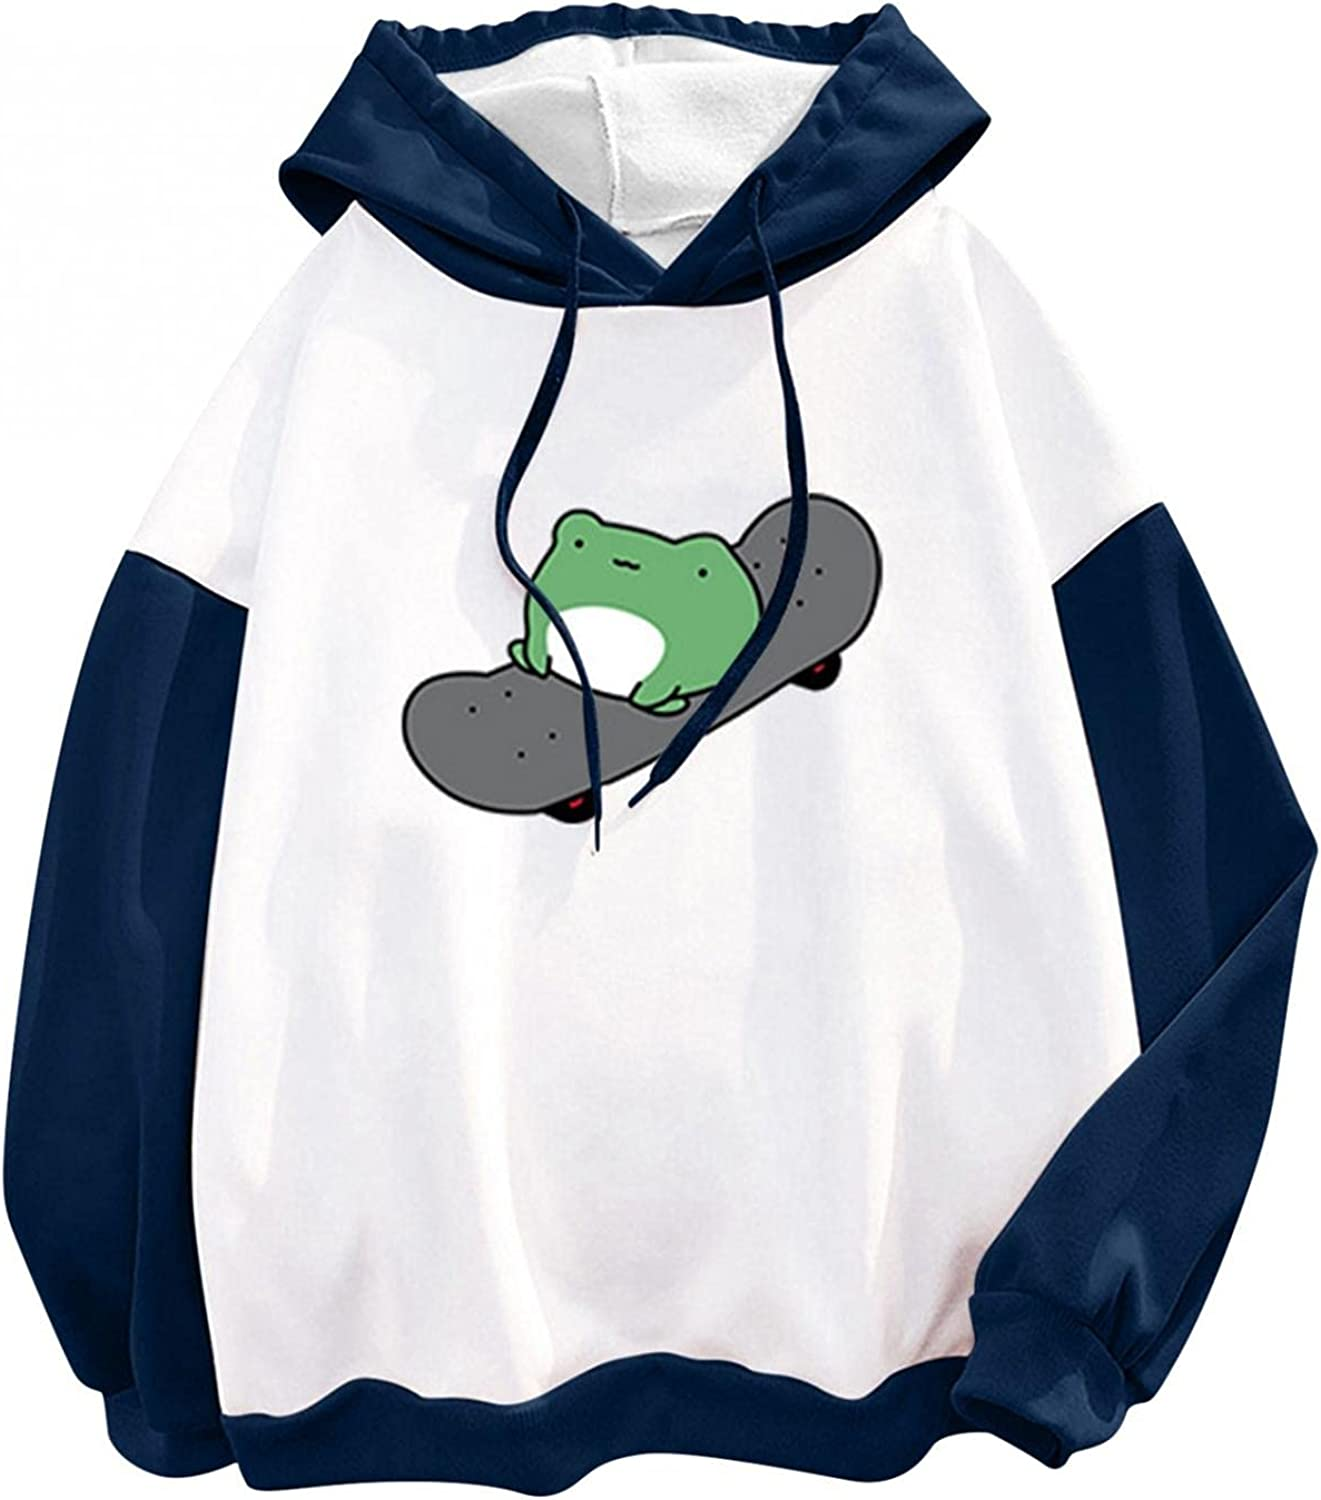 POLLYANNA KEONG Frog Hoodies for Women Long Sleeve Loose Casual Sweatshirt Pullover Tops with Pocket